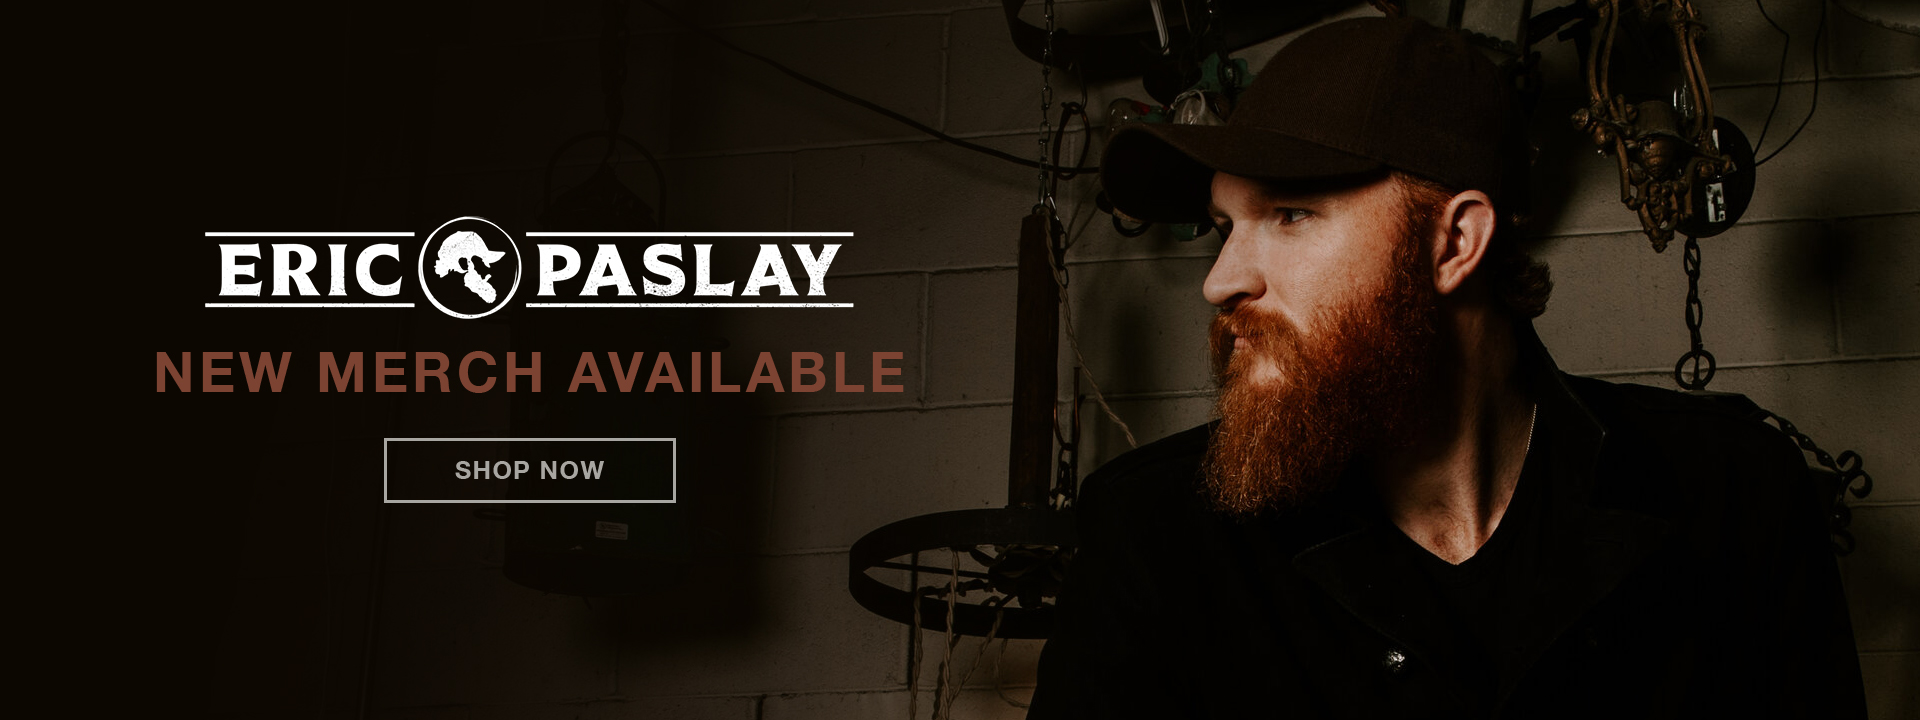 Eric Paslay | New merch available | Shop now